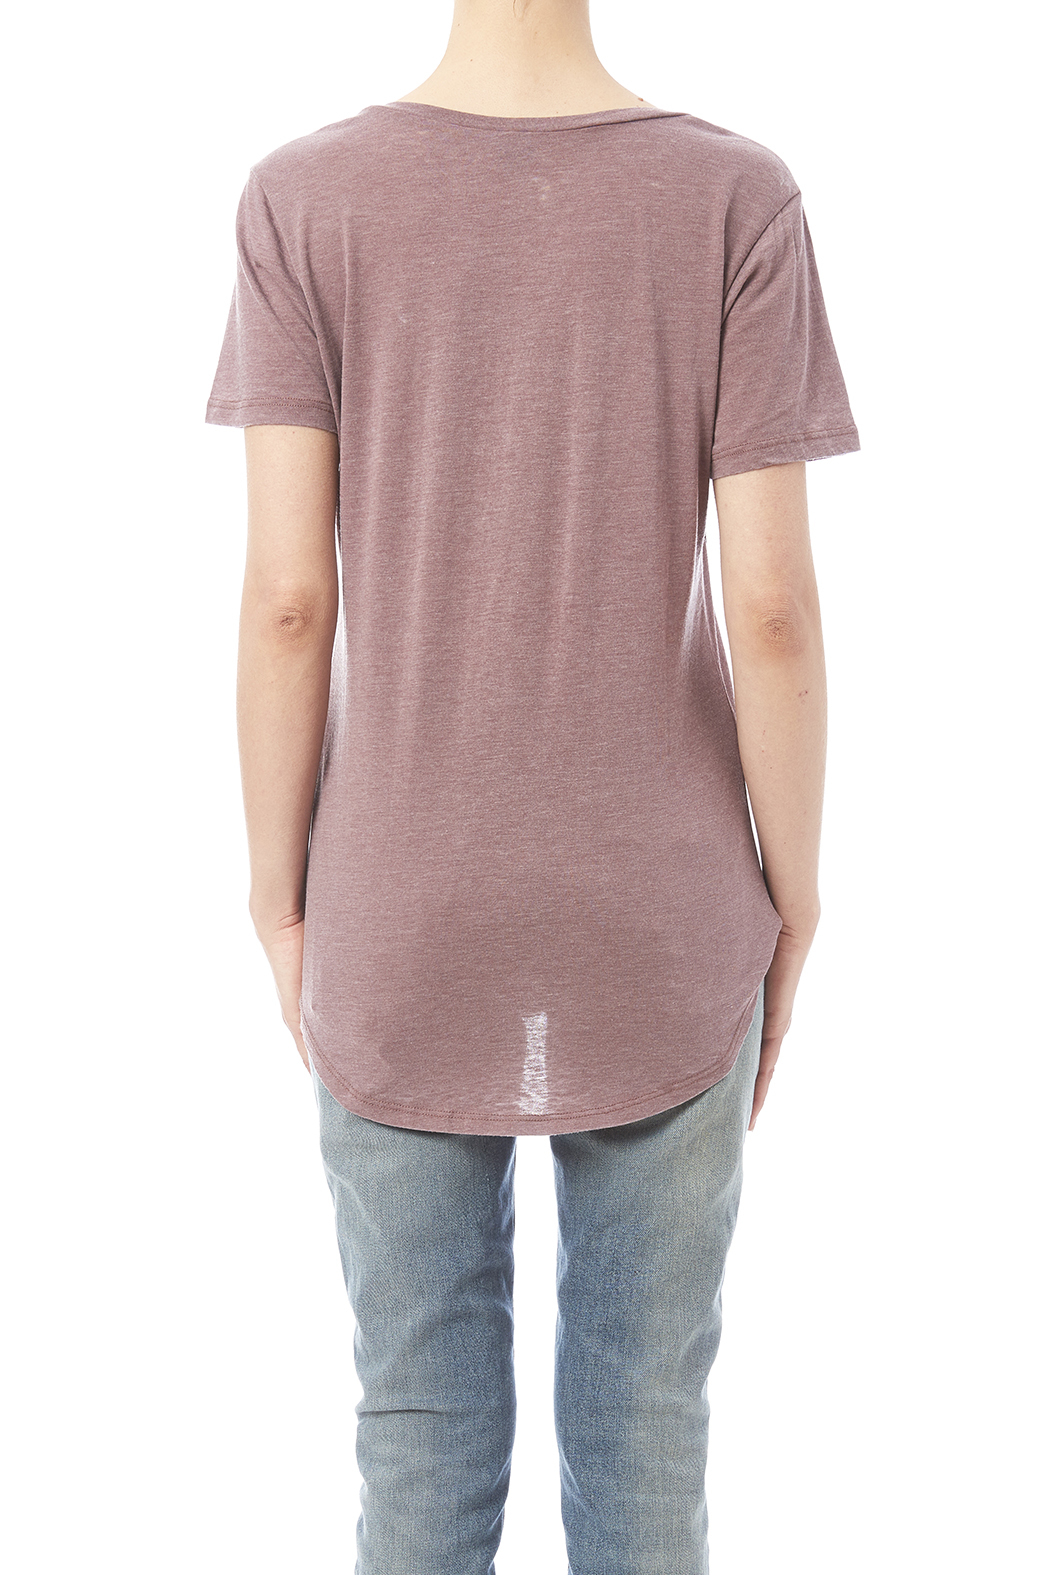 WILLIAM B The Pocket Tee - Back Cropped Image